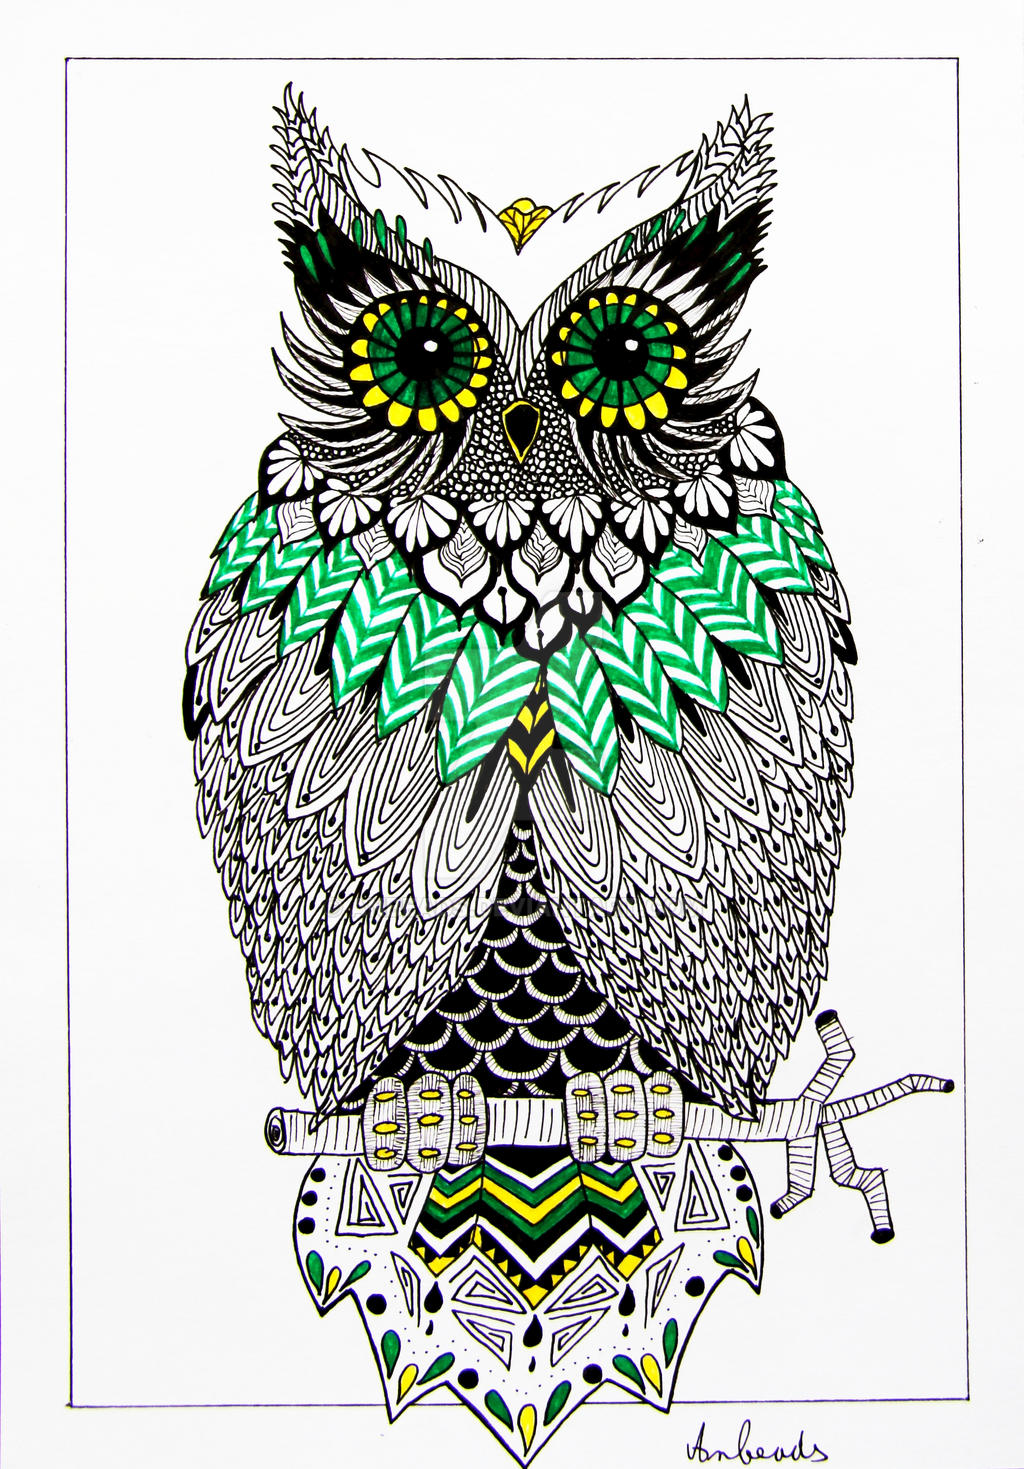 Zentangle owl by Anbeads on DeviantArt: anbeads.deviantart.com/art/Zentangle-owl-530061730